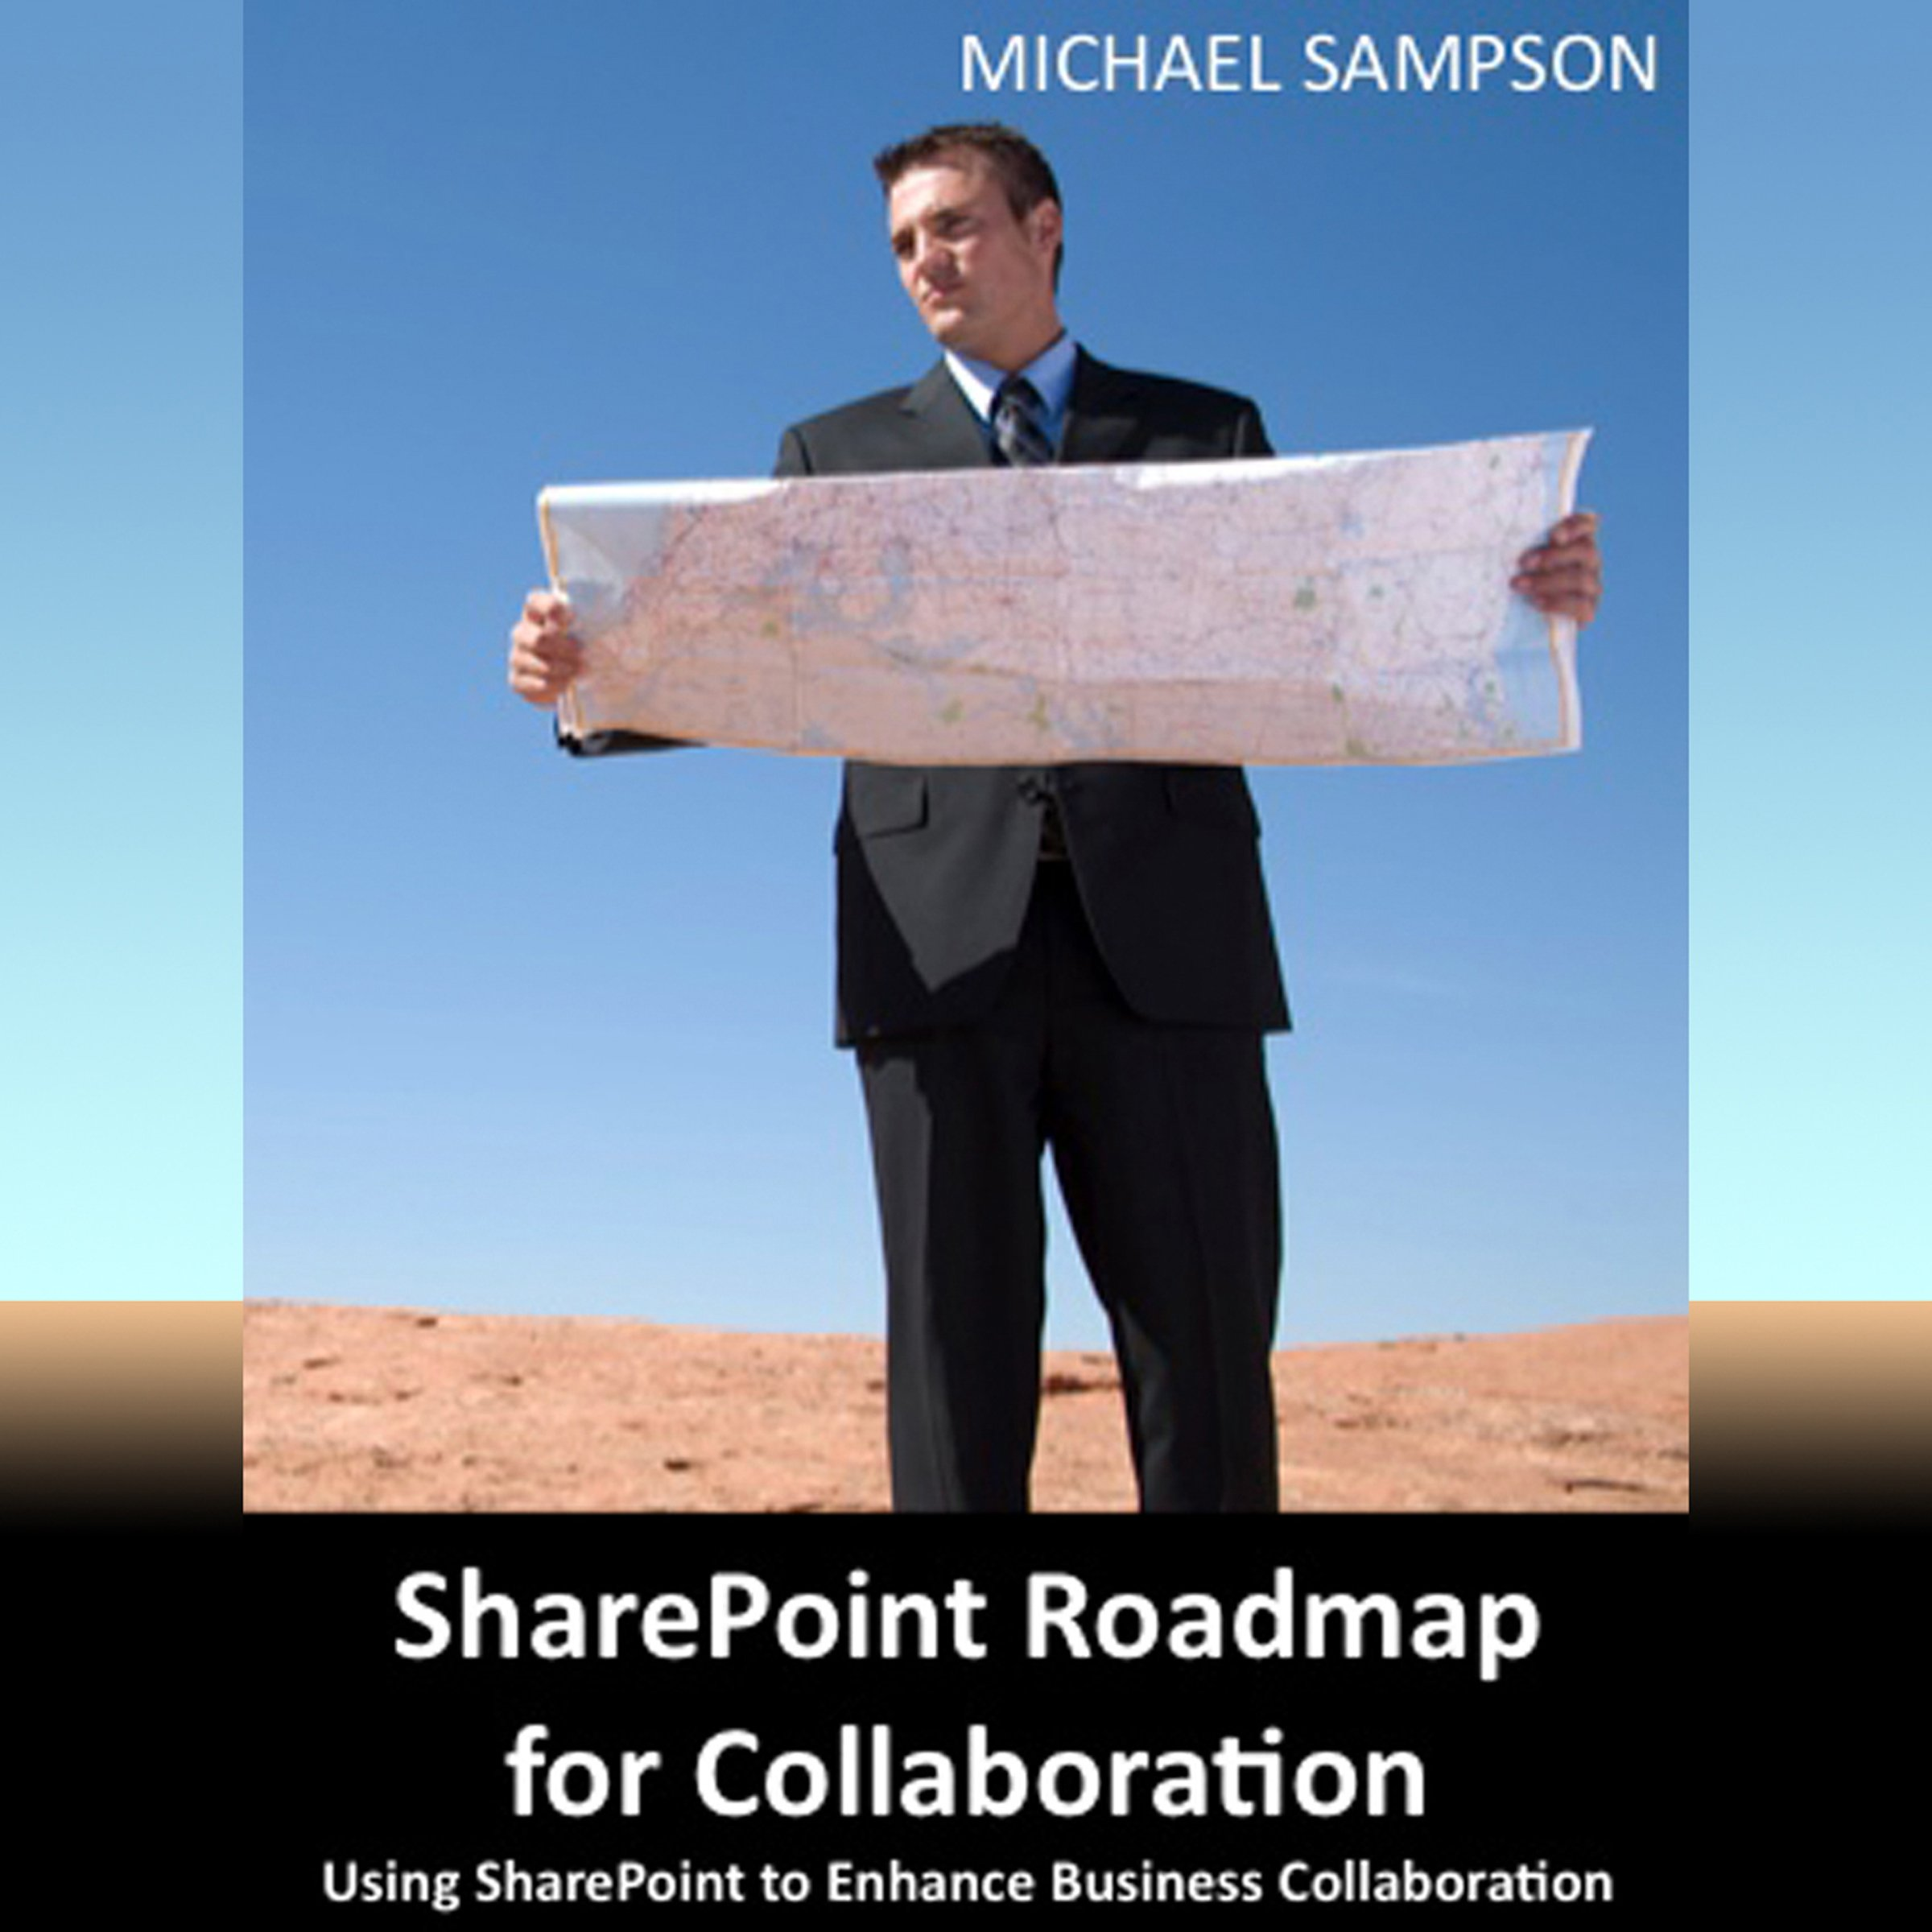 SharePoint Roadmap for Collaboration: Using SharePoint to Enhance Business Collaboration